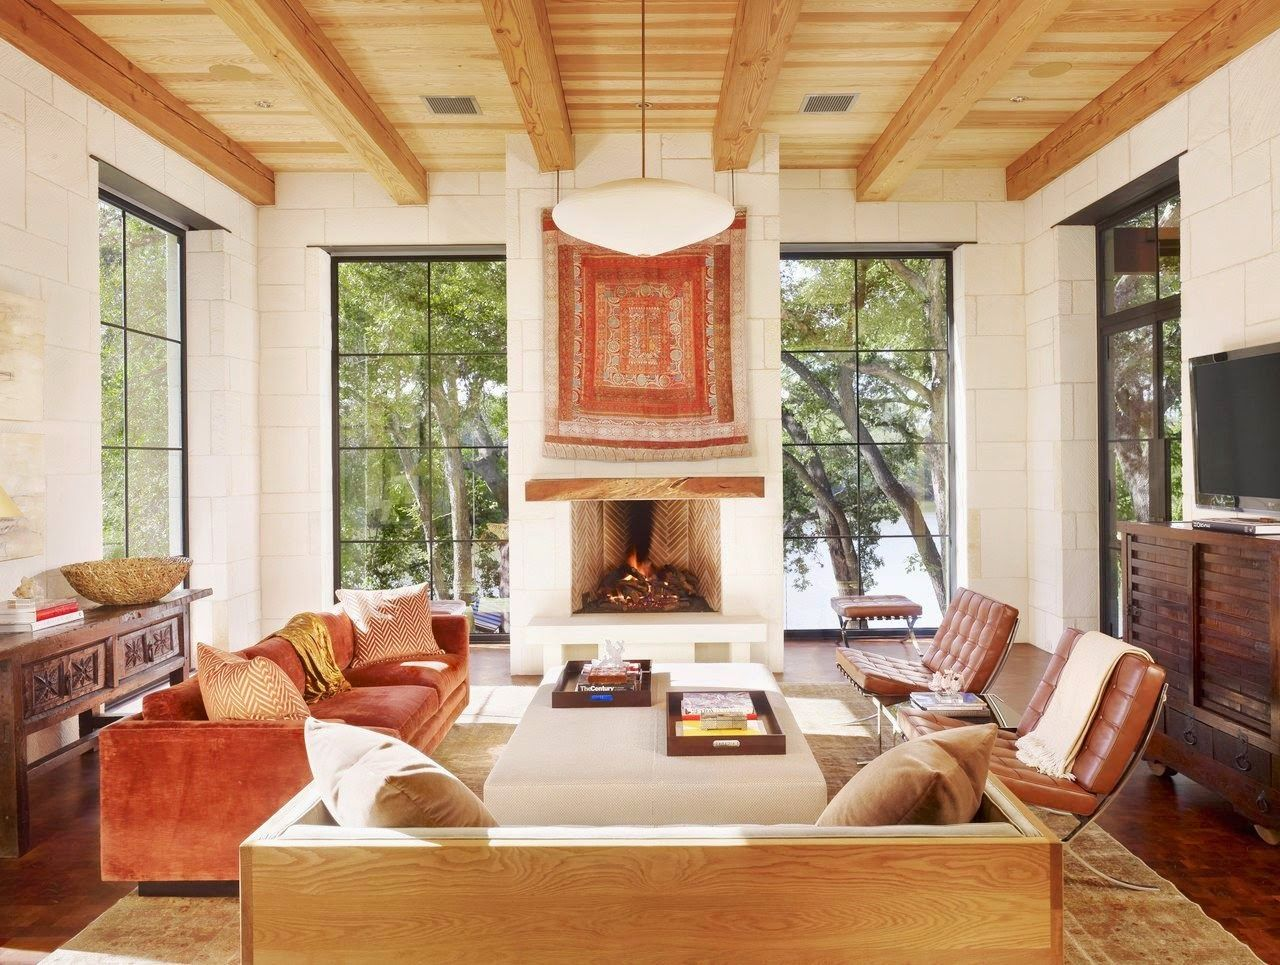 definition for interior design - 1000+ images about Living oom Loveliness on Pinterest Brooklyn ...